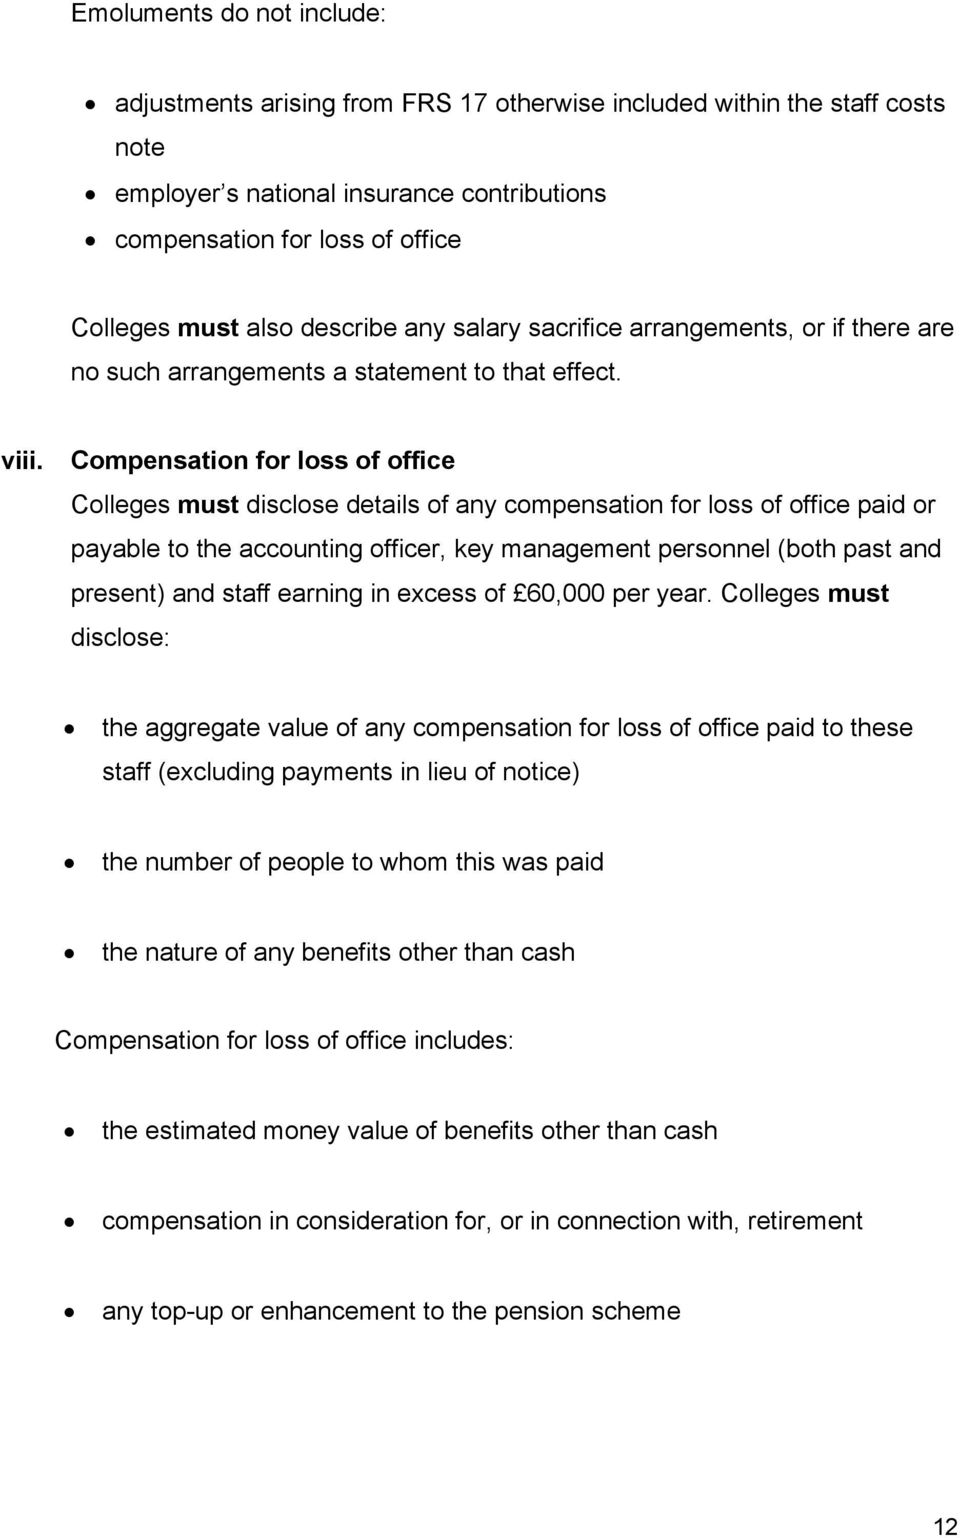 Compensation for loss of office Colleges must disclose details of any compensation for loss of office paid or payable to the accounting officer, key management personnel (both past and present) and